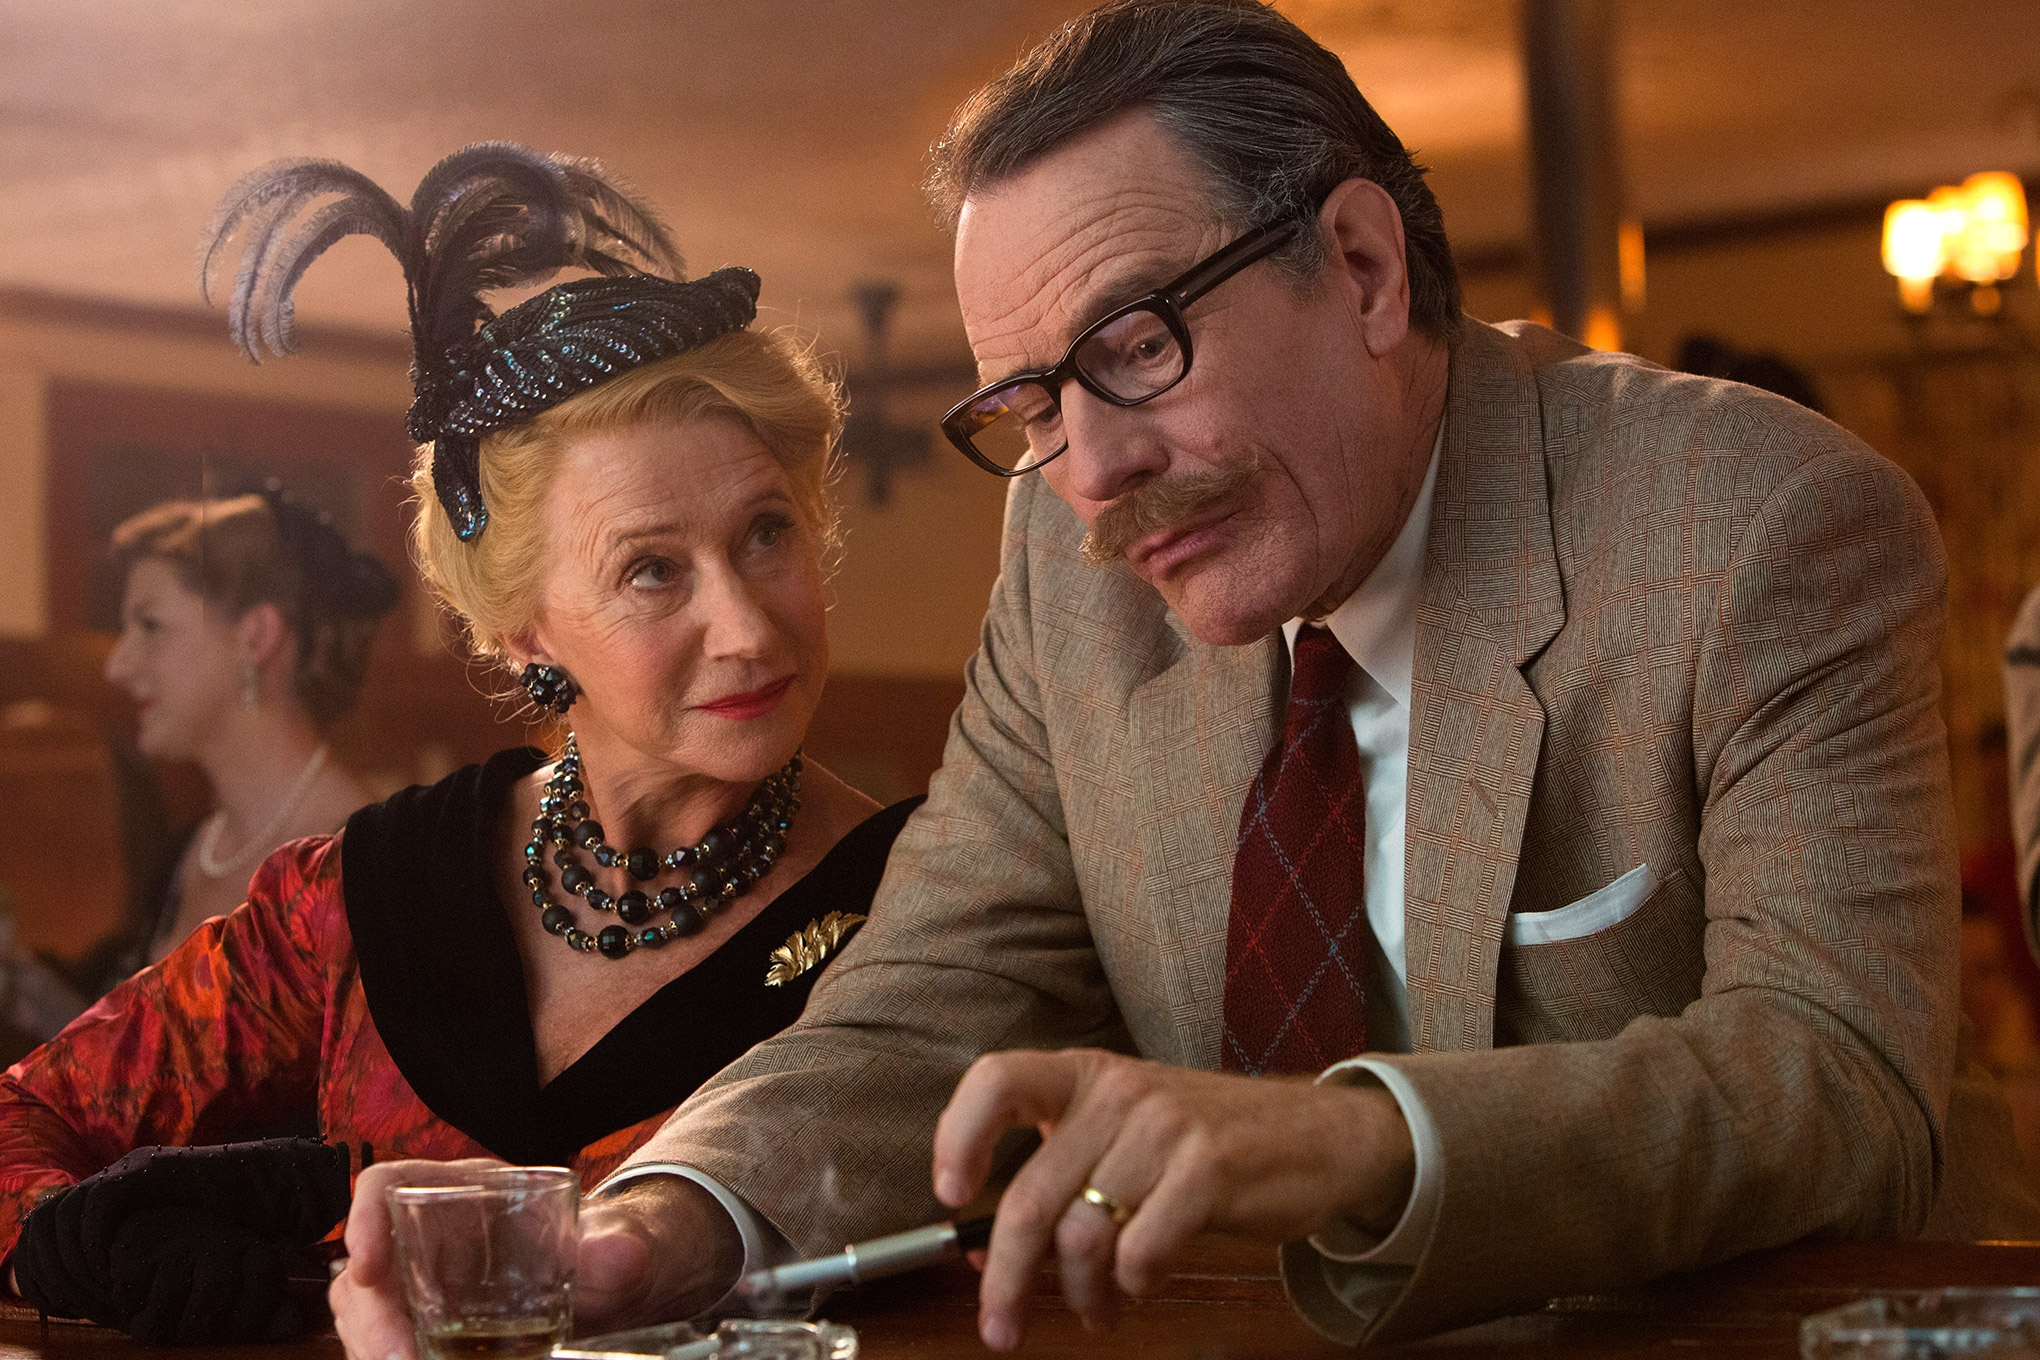 'TRUMBO': NOT QUITE ASGOOD AS TRUMBO - While 'Trumbo' succeeds in breadth, it struggles with depth.